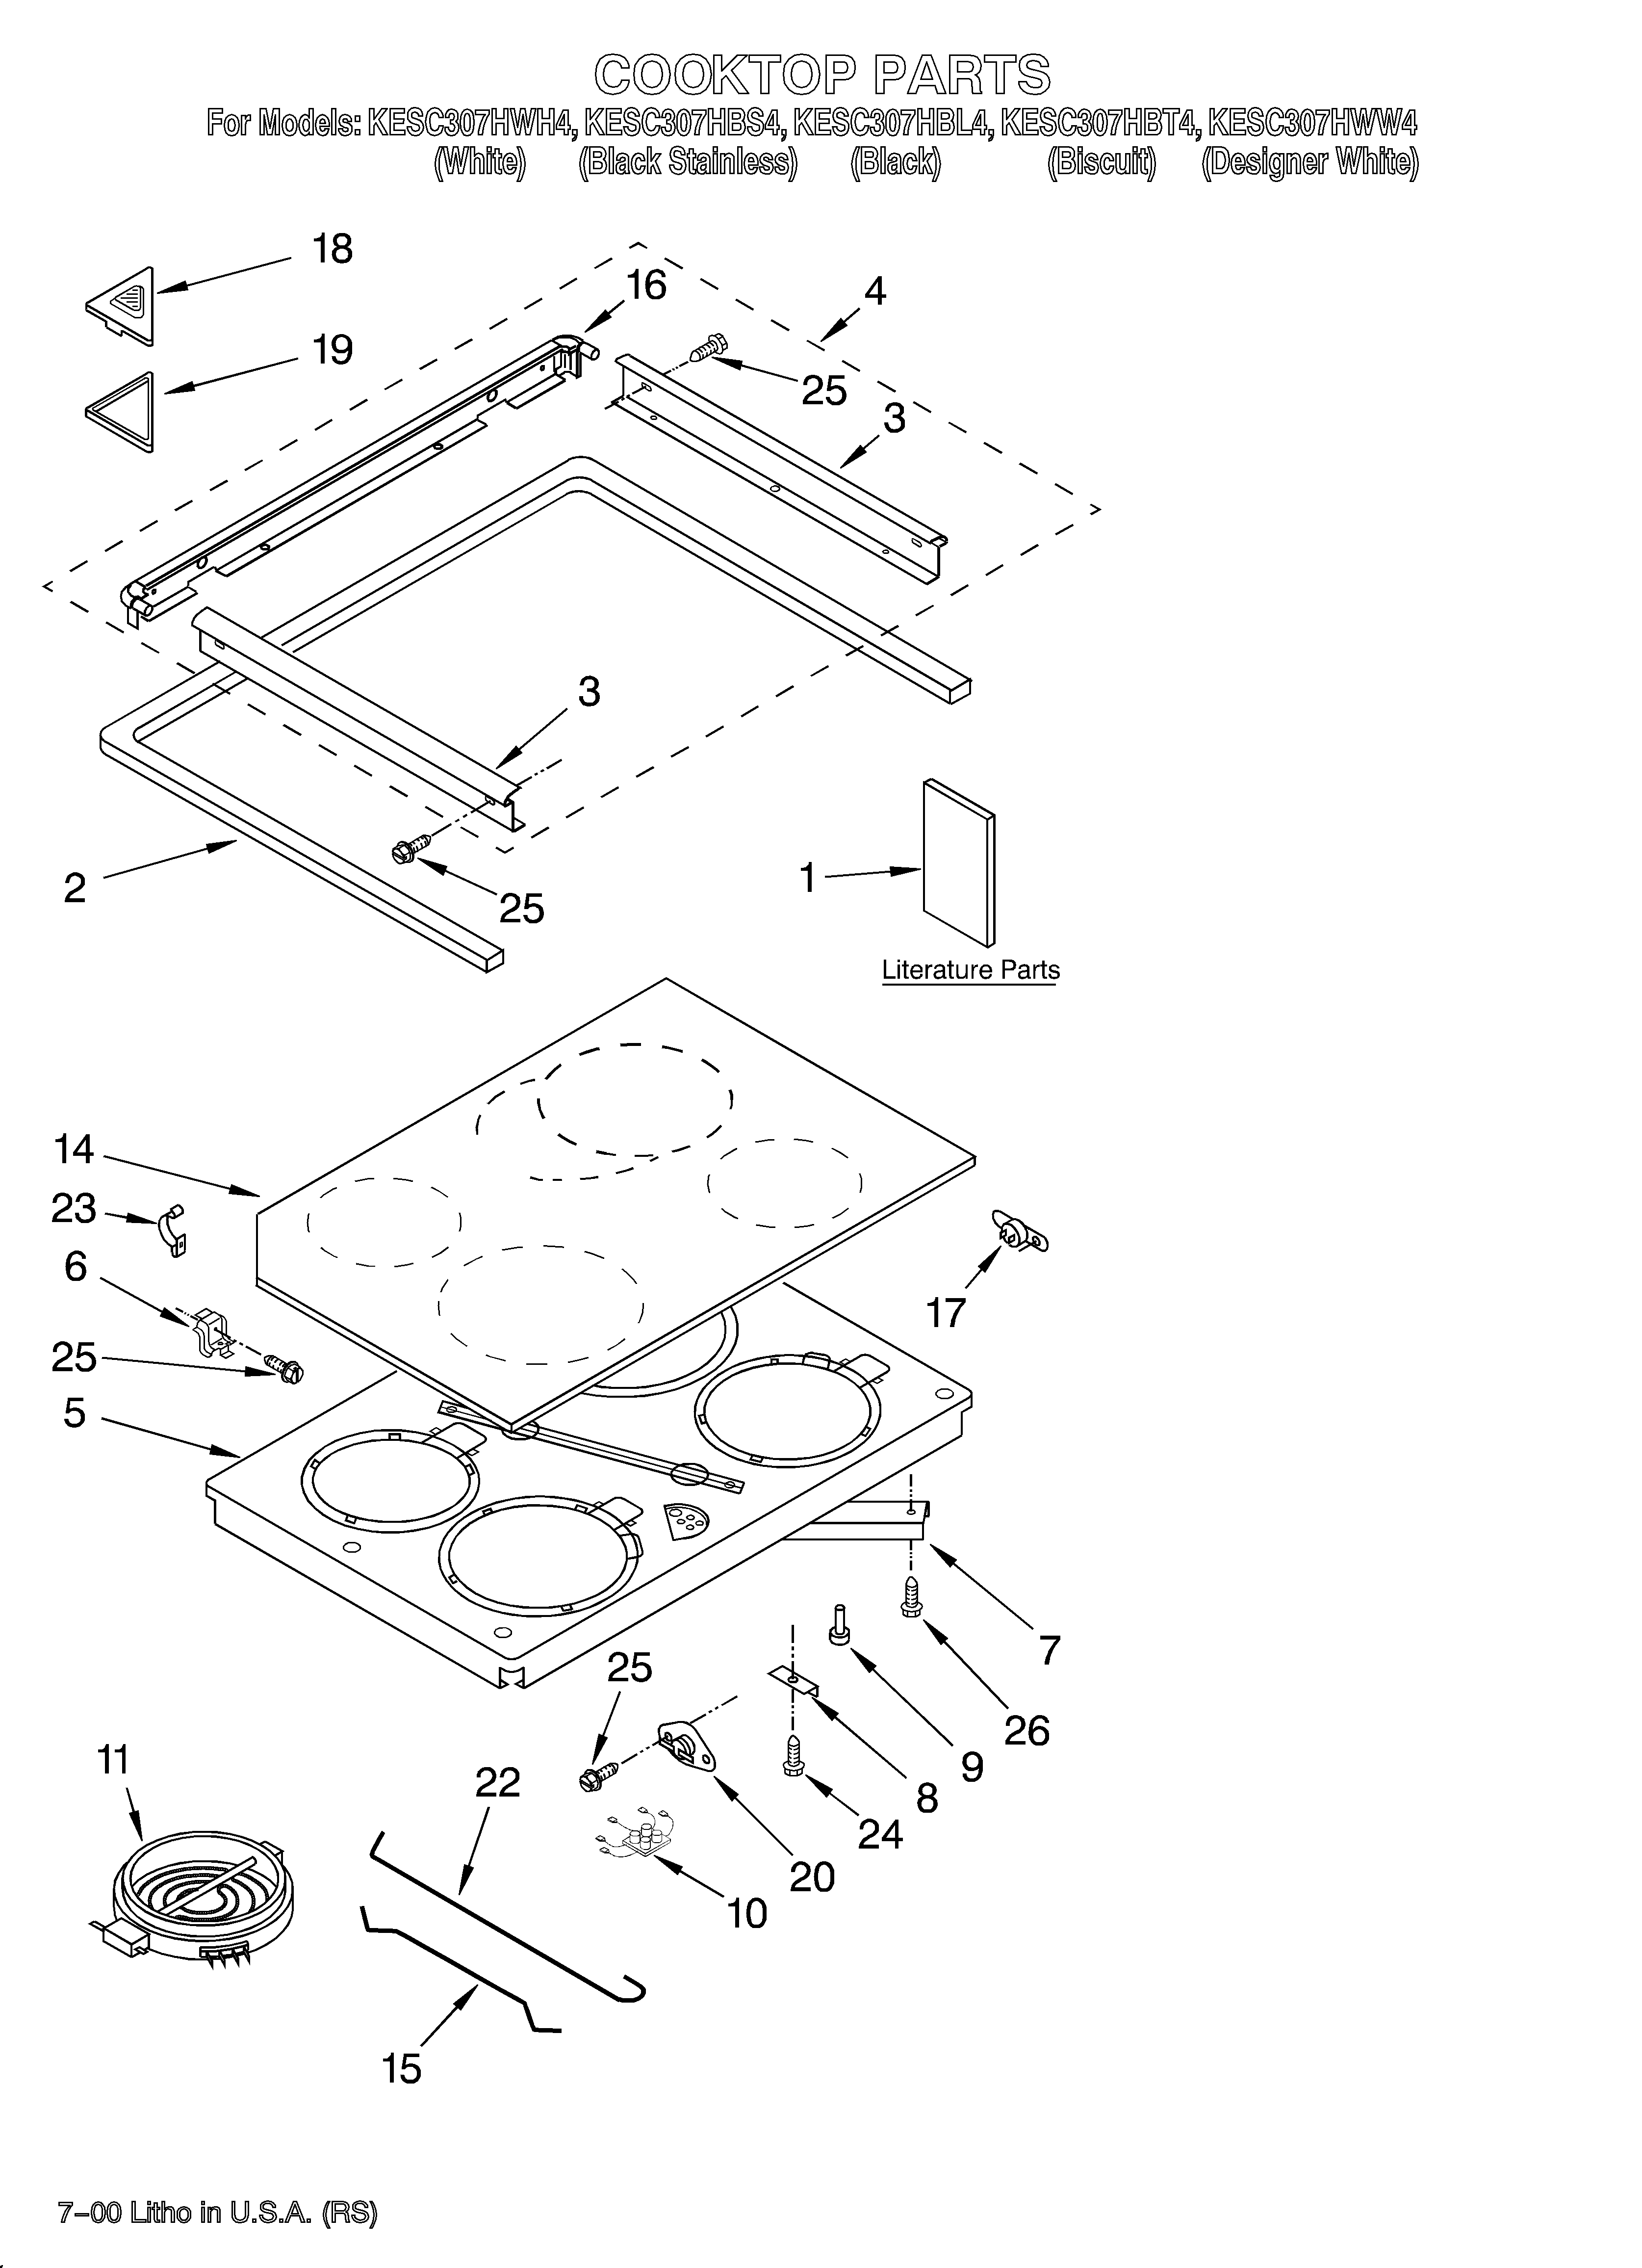 kitchenaid kesc307hwh4 cooktop/literature diagram